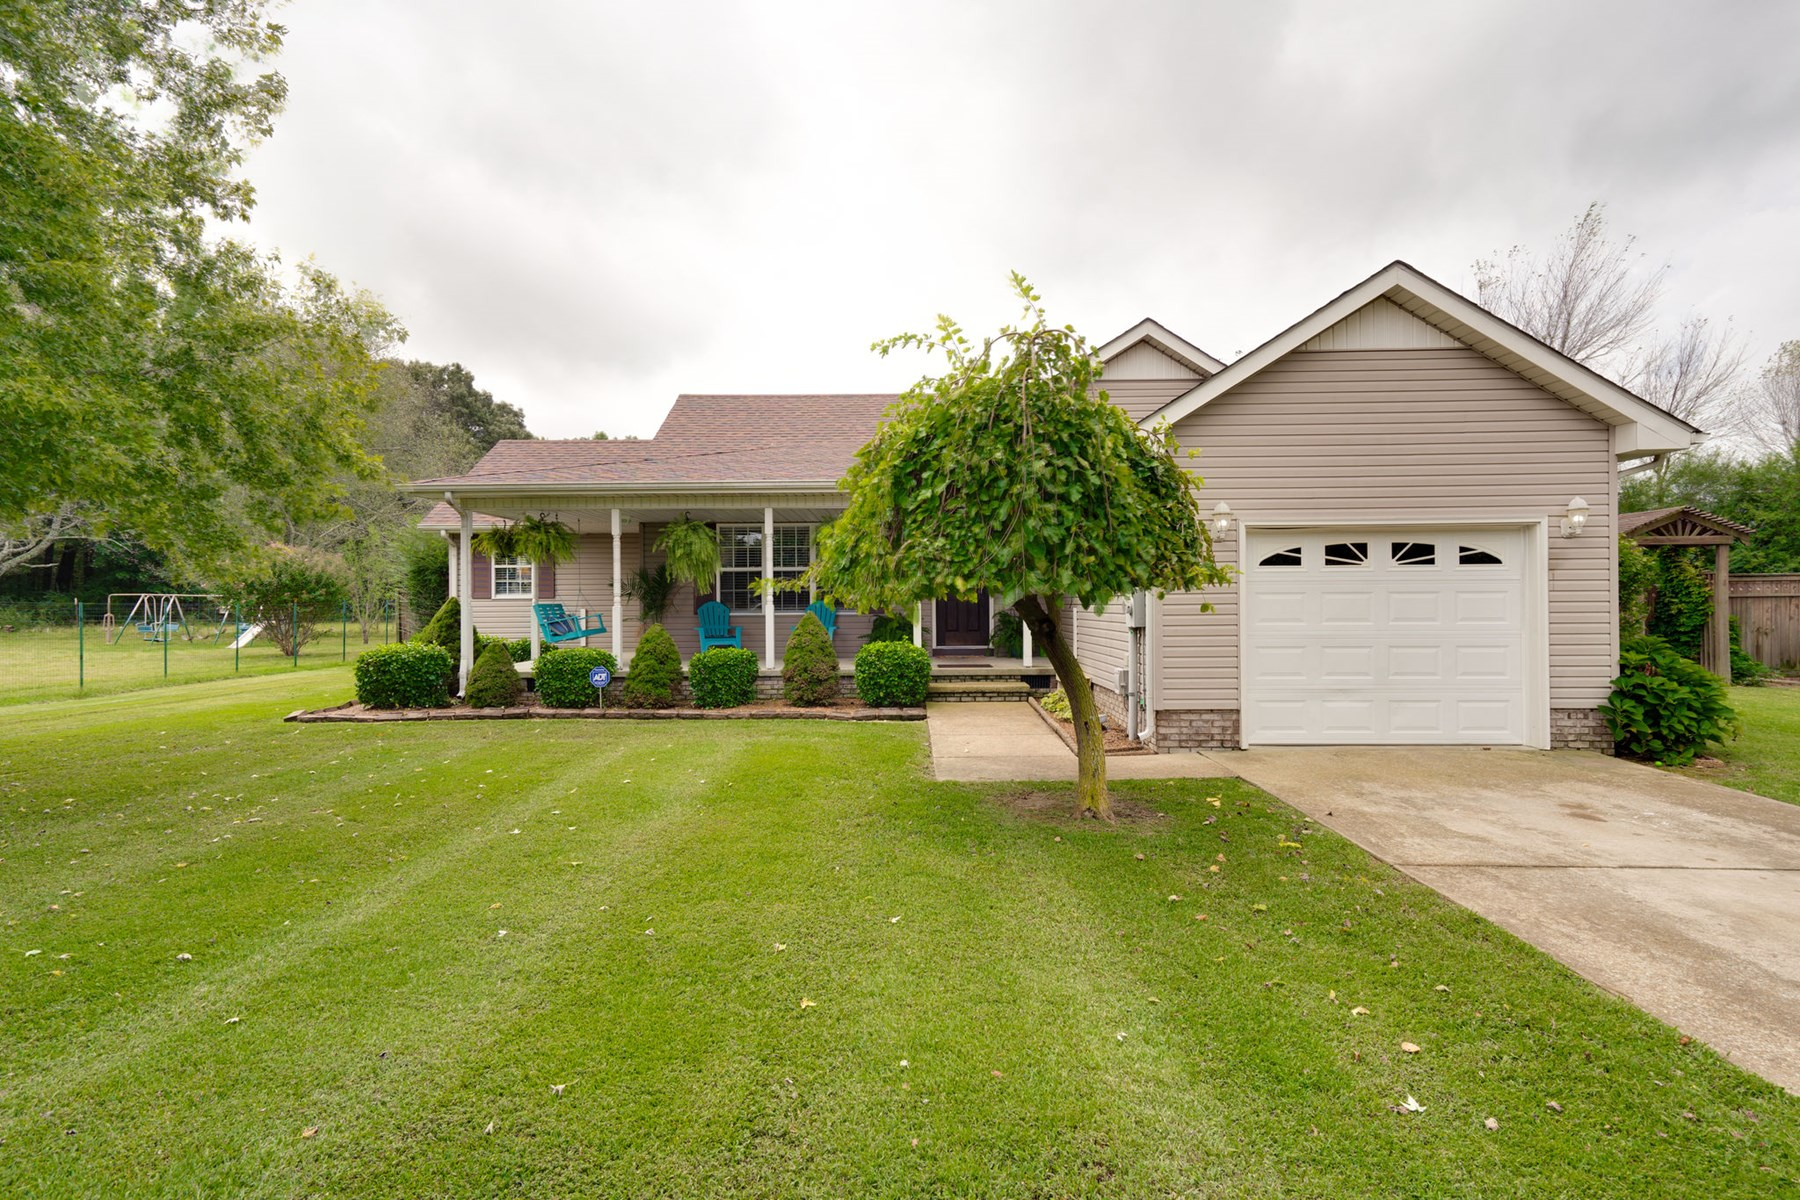 Hohenwald, Tennessee Lewis County Home In Town For Sale